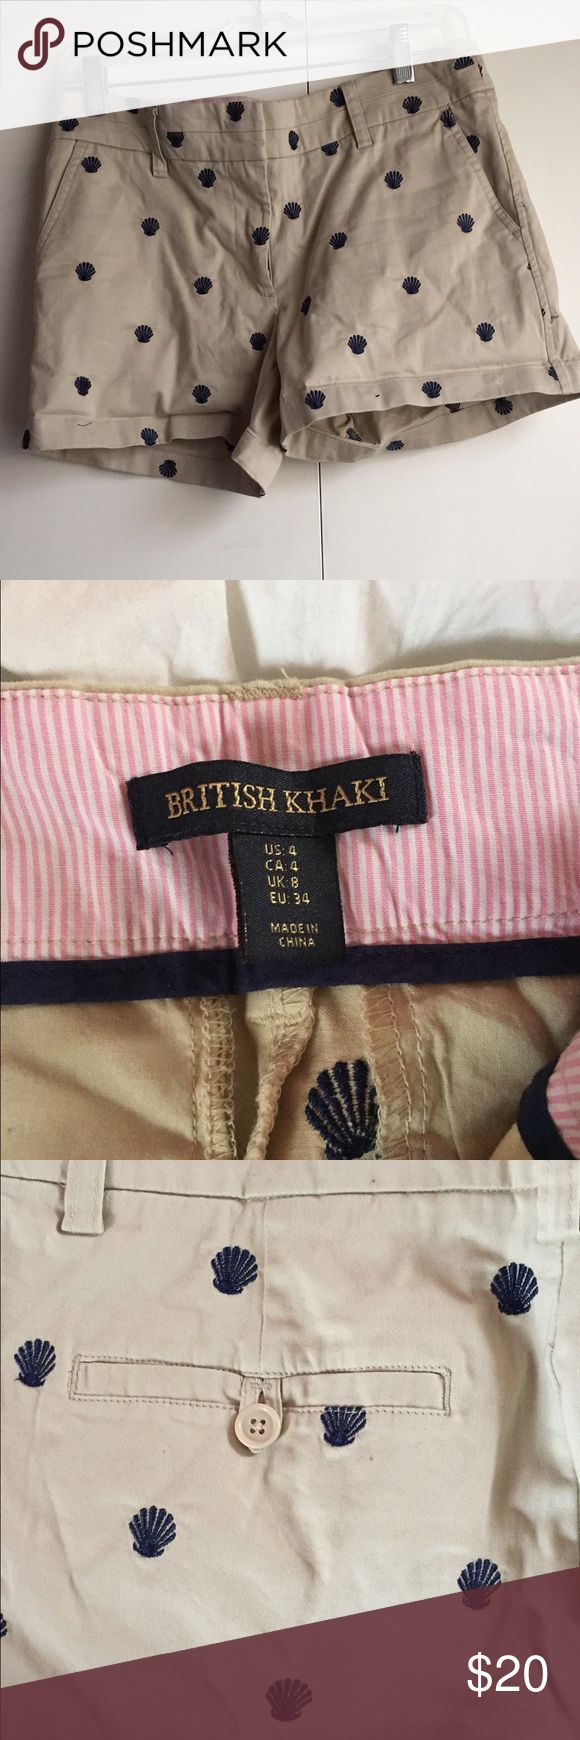 British Khaki shorts with navy embroidery Adorable preppy novelty shorts. Khaki with navy clams embroidered all over. In great condition and have only been worn a few times, but I am still willing to negotiate on the price! British Khaki  Shorts